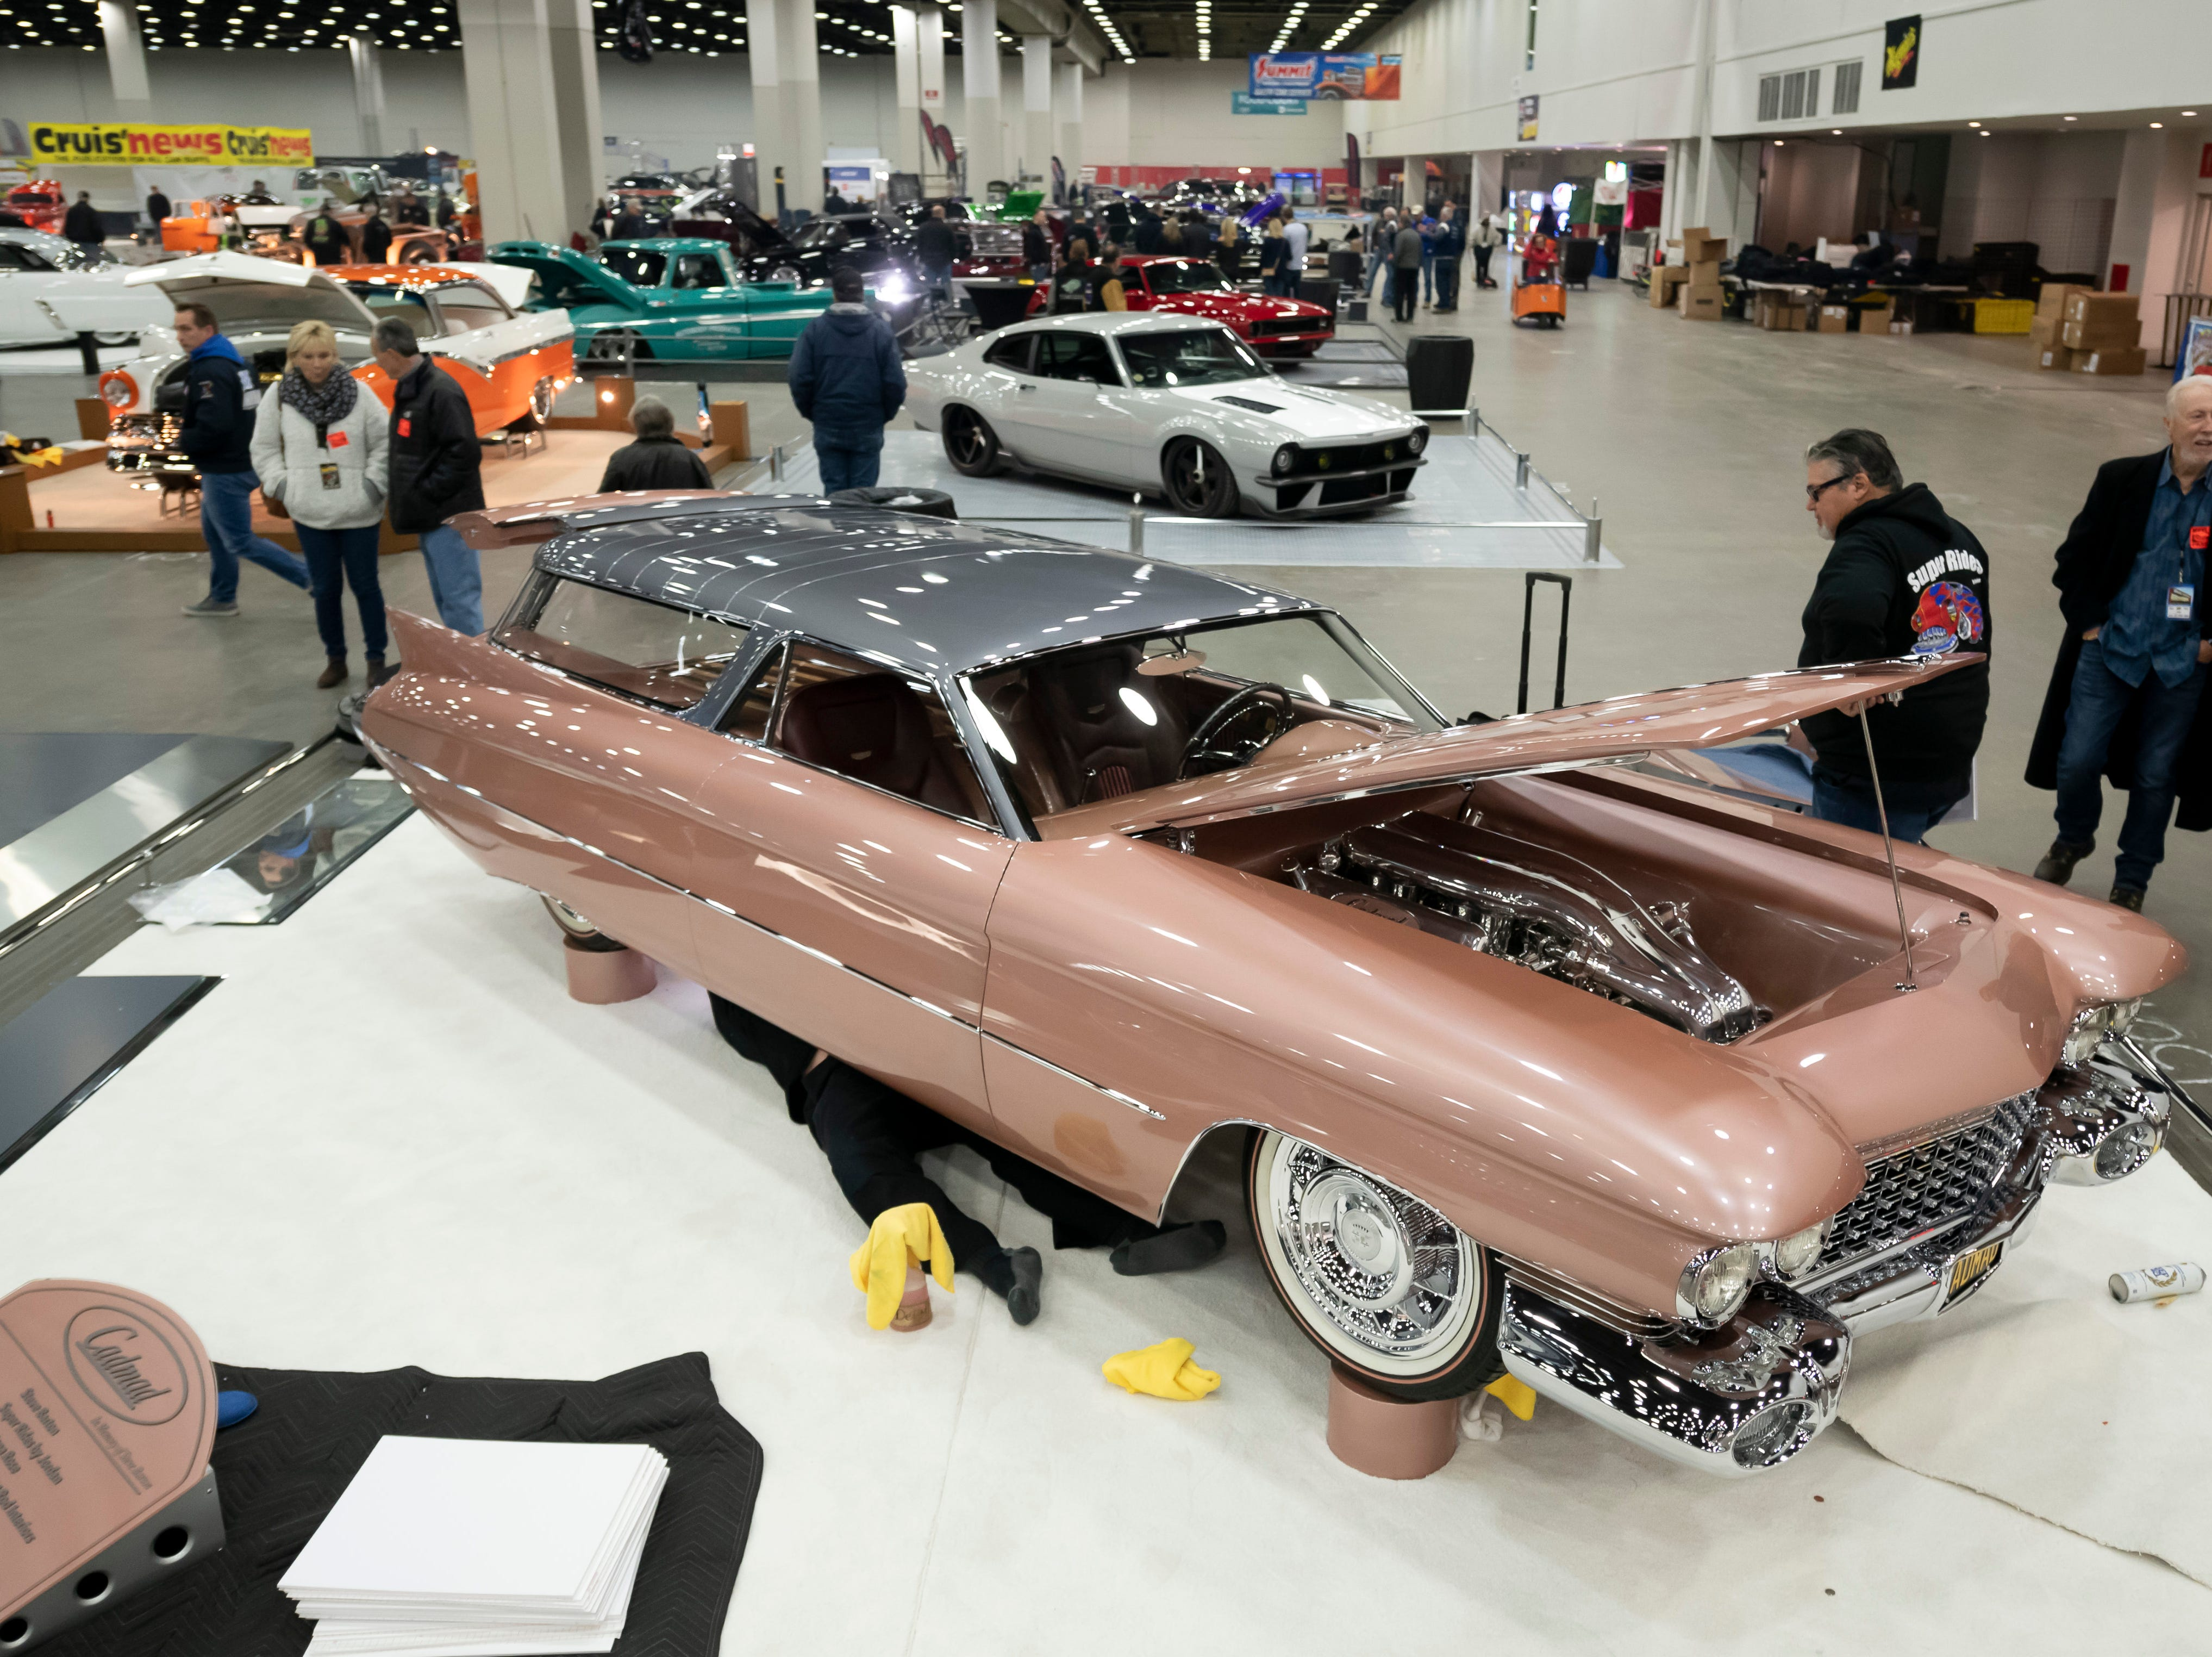 A 1959 Cadillac, nicknamed Cadmad and owned by Steve Barton, is prepared for display at Cobo Center for this weekend's Detroit Autorama show, which opens at noon Friday and runs through Sunday, March 3, 2019.